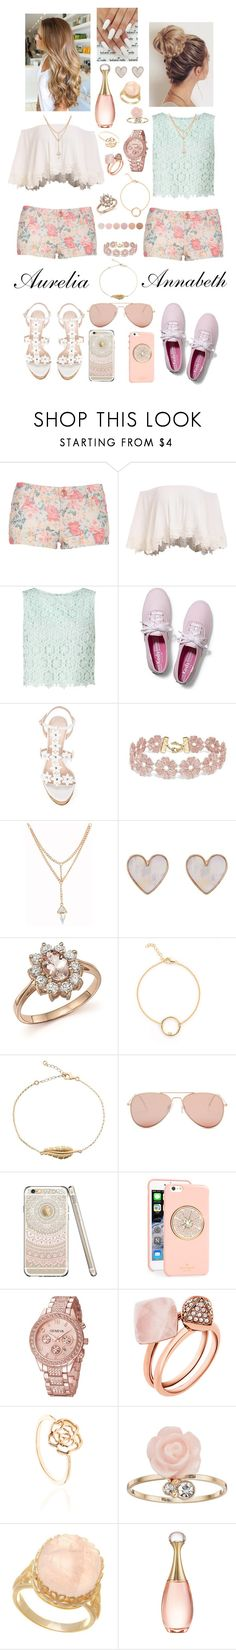 """""""Matching Styles with Pastels"""" by megan-maddalena ❤ liked on Polyvore featuring Miss Selfridge, Keds, Oscar de la Renta, BaubleBar, New Look, Bloomingdale's, Betsey Johnson, Kate Spade, Michael Kors and LC Lauren Conrad"""